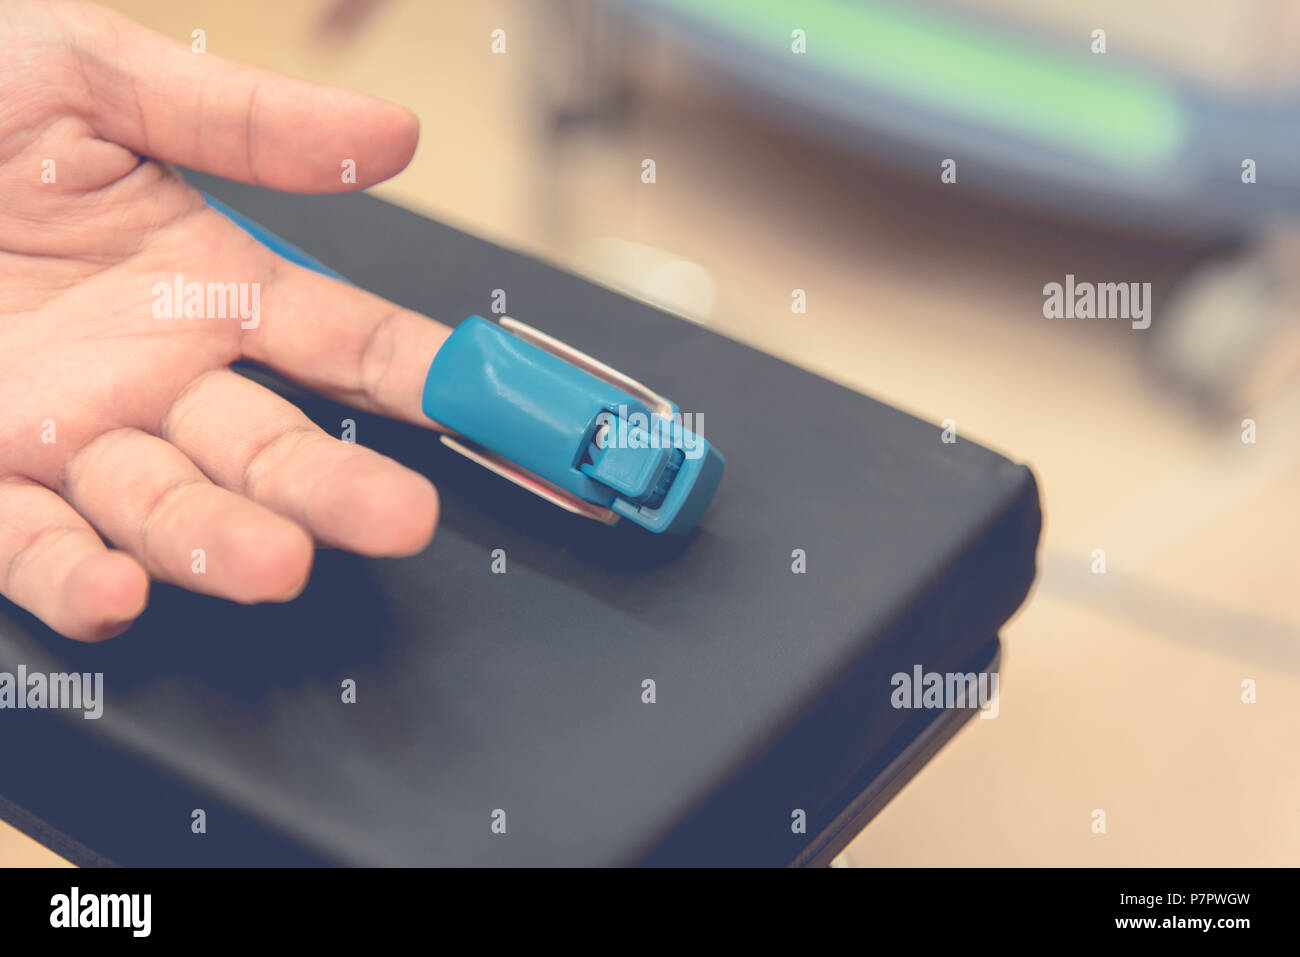 Cardiac finger pulse rate meter for check heart beat and output to monitor. Medical and Healthcare concept. Doctor and patient theme - Stock Image